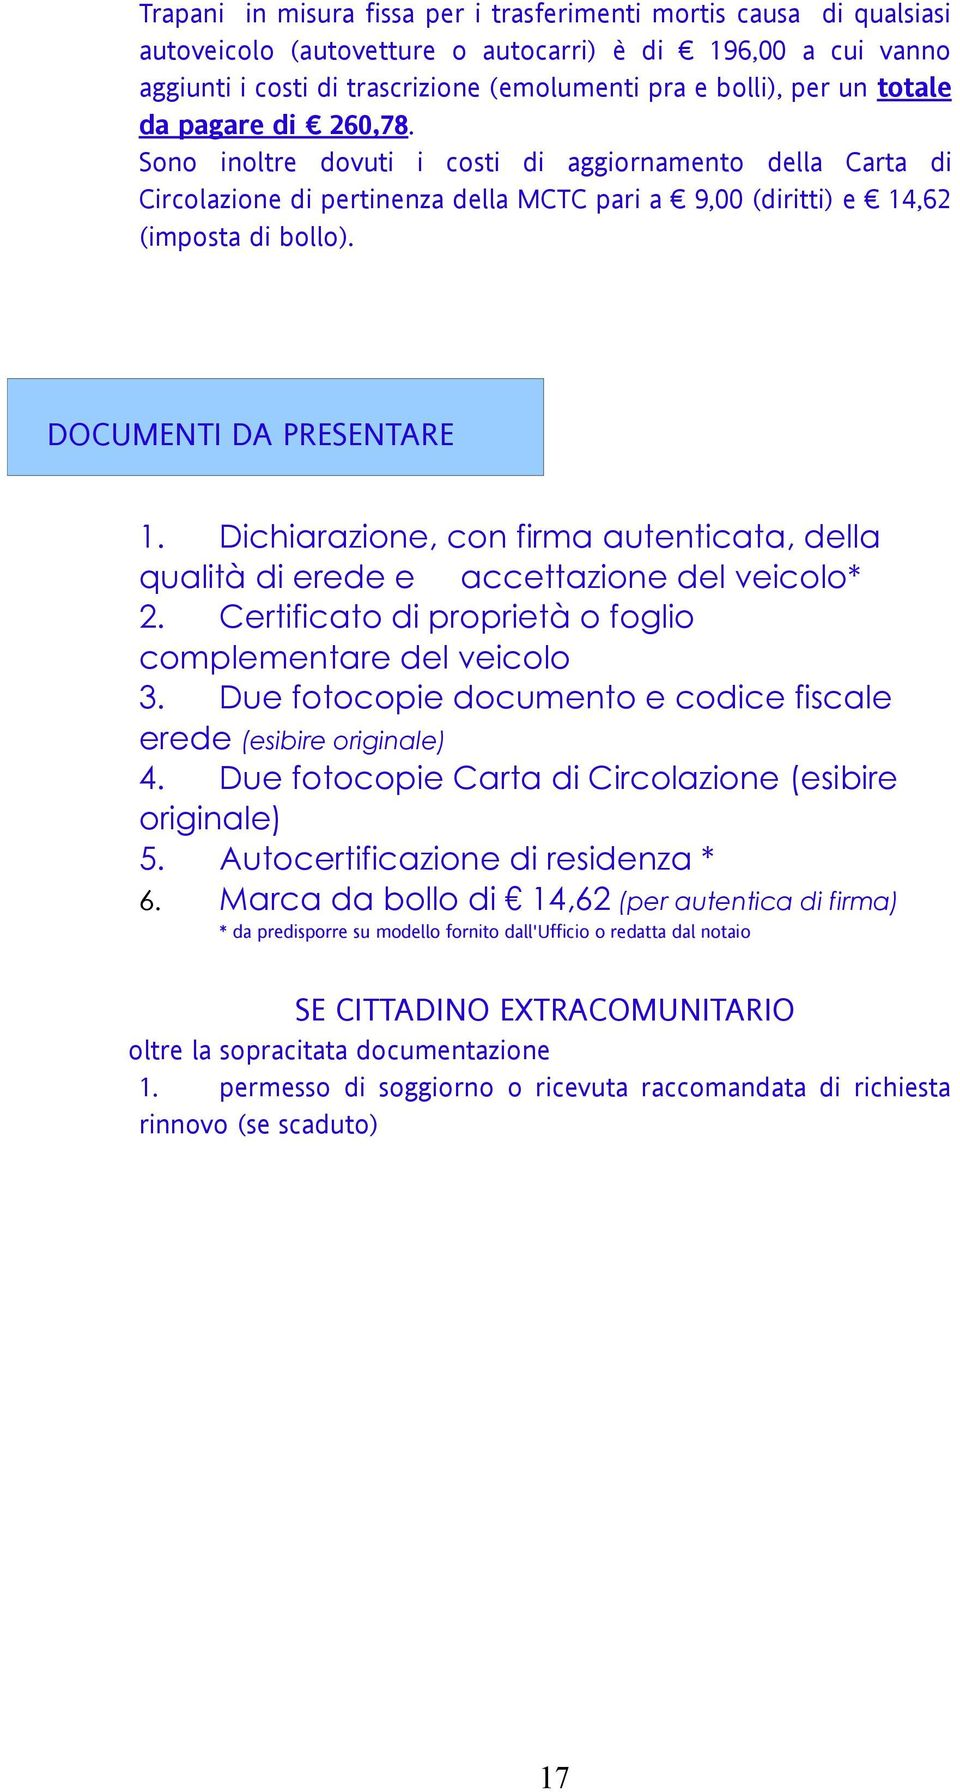 Awesome Documenti Per Rinnovo Carta Di Soggiorno Contemporary ...